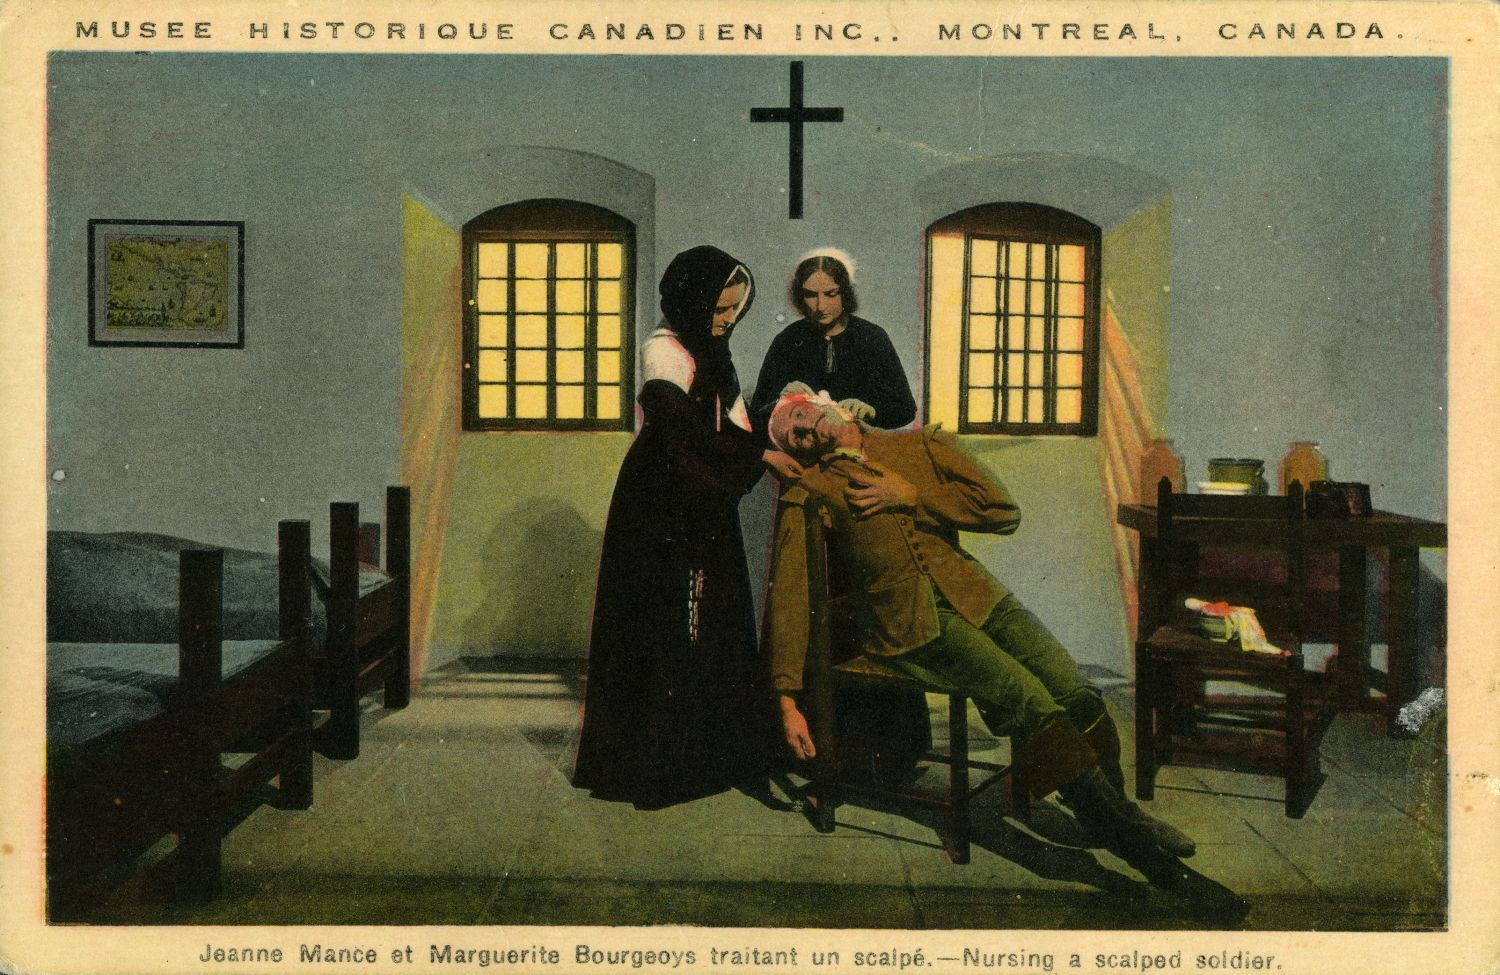 1 000 french canadian clothing french canadian apparel french -  Original Title Musee Historique Canadien Inc Montreal Canada